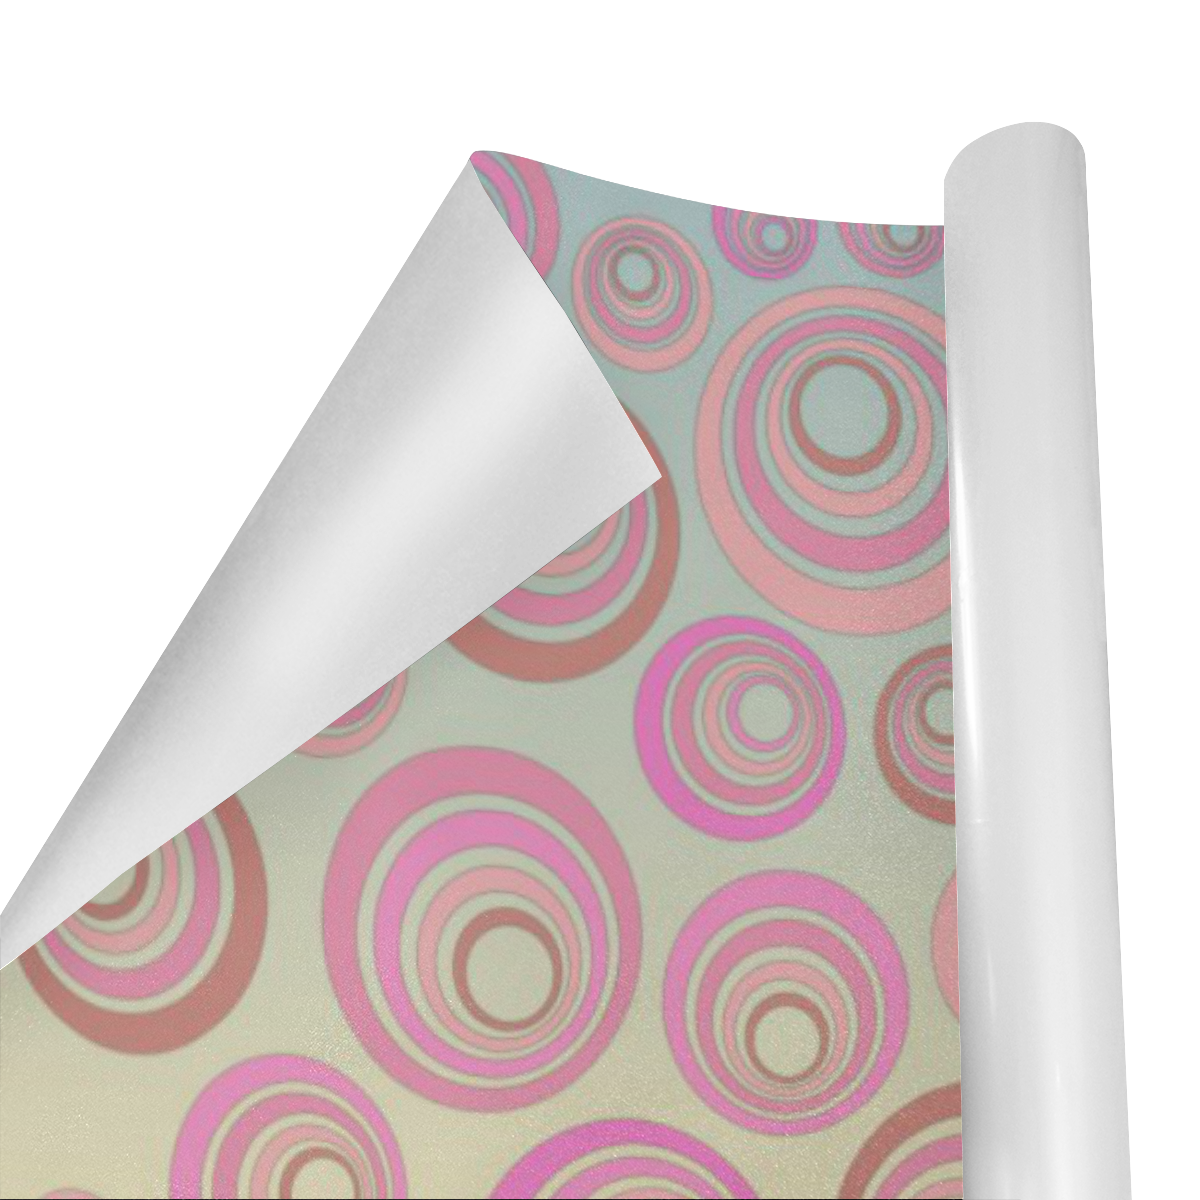 "Retro Psychedelic Pink and Blue Gift Wrapping Paper 58""x 23"" (1 Roll)"